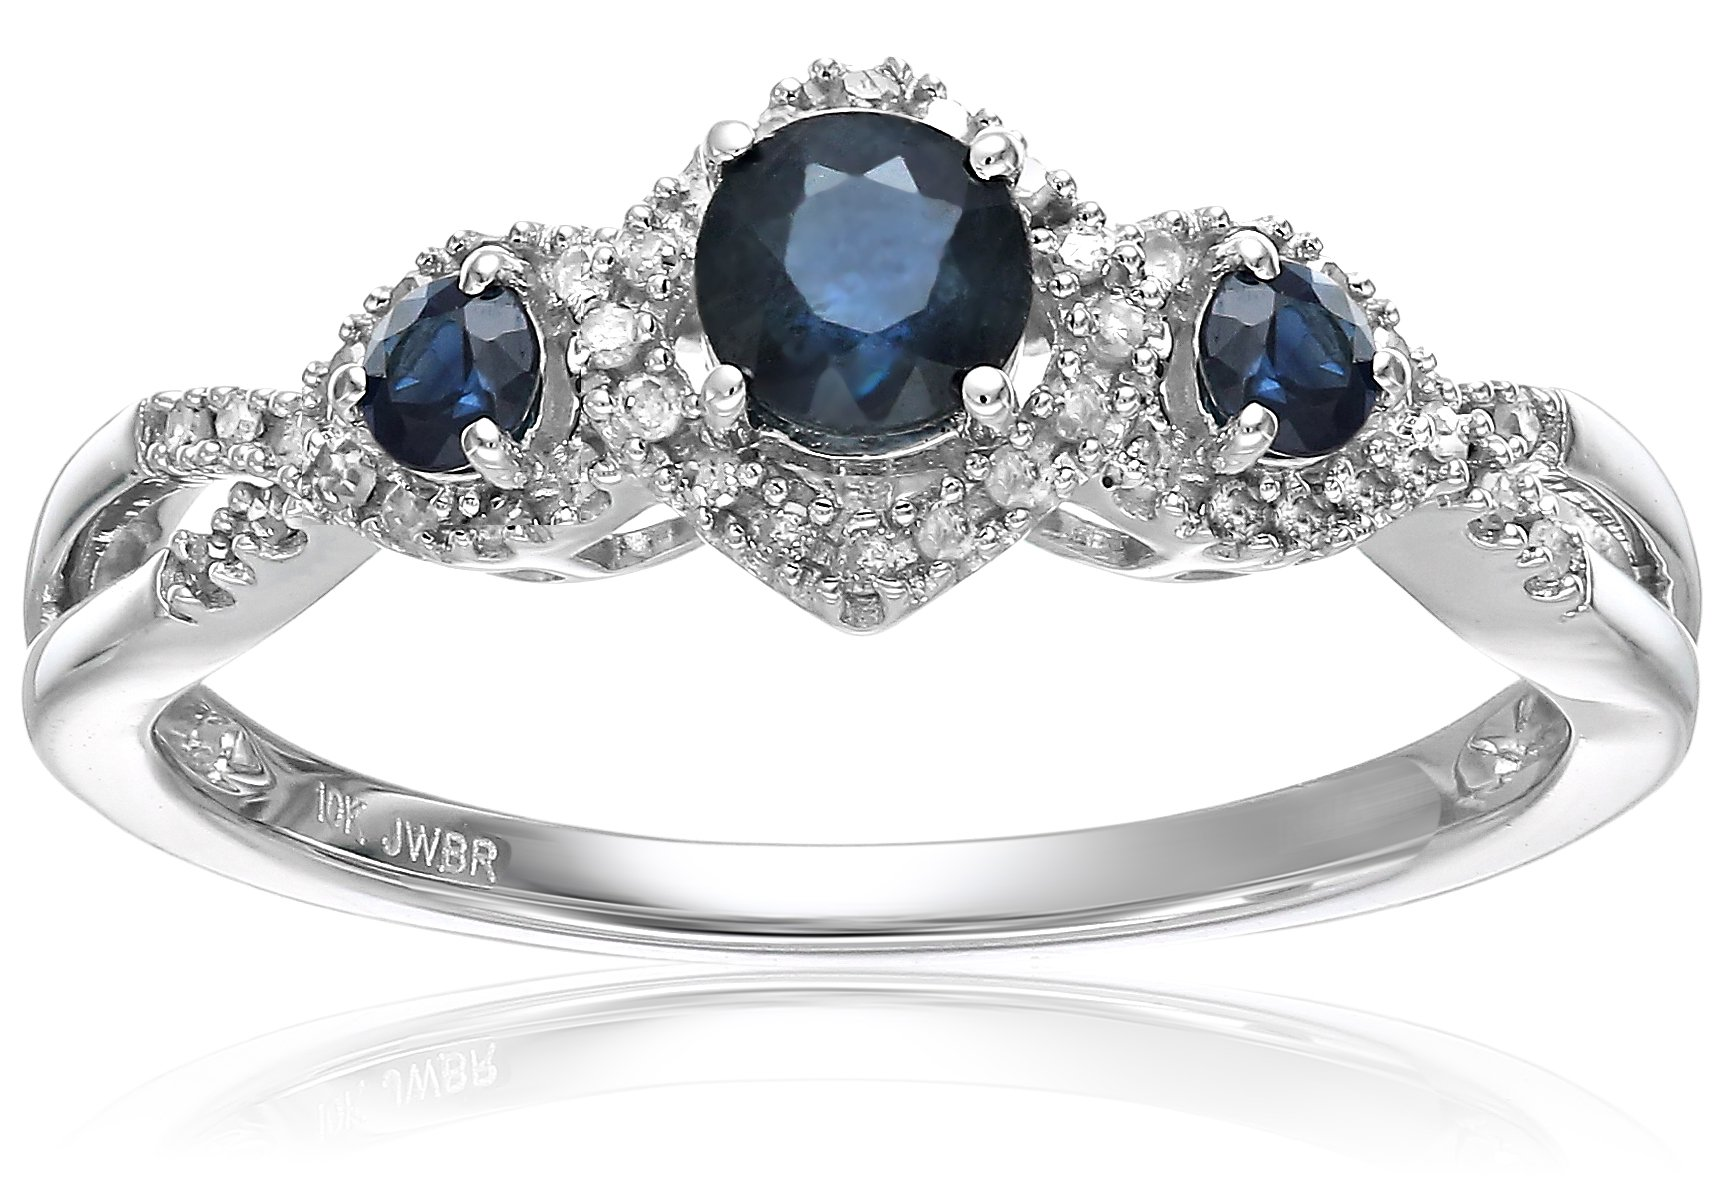 10k White Gold Sapphire with White Diamond 3-Stone Engagement Ring, Size 7